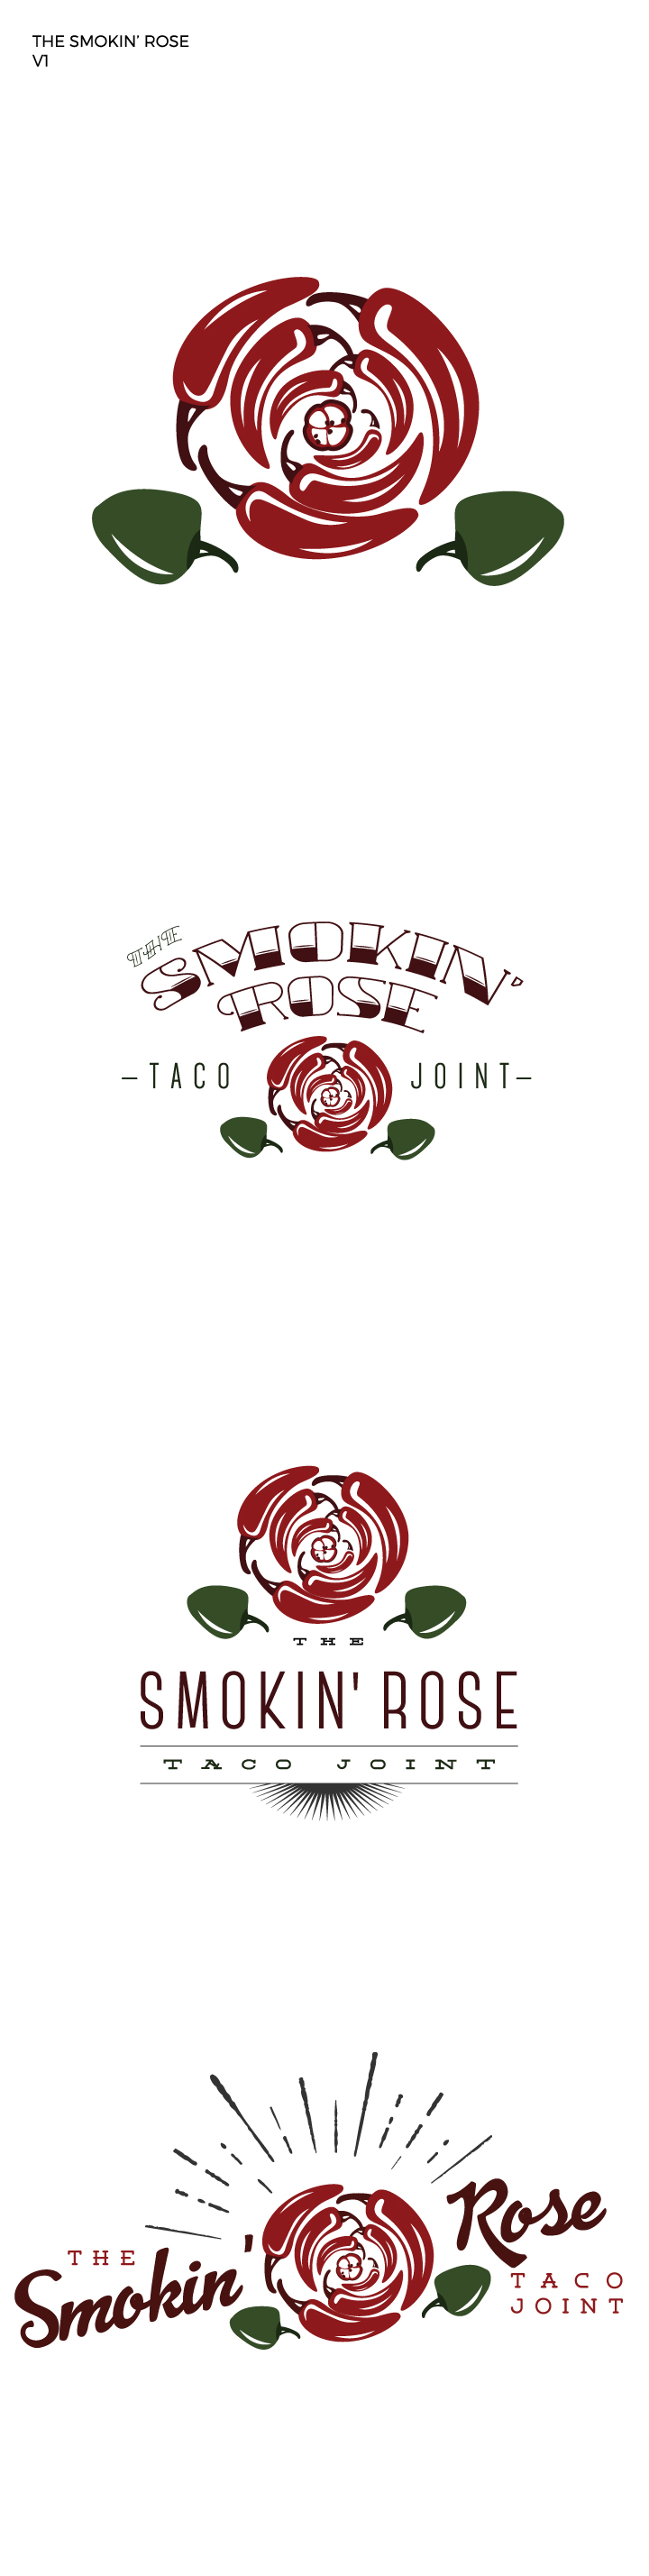 Logo Concepts: The Smokin' Rose Taco Truck